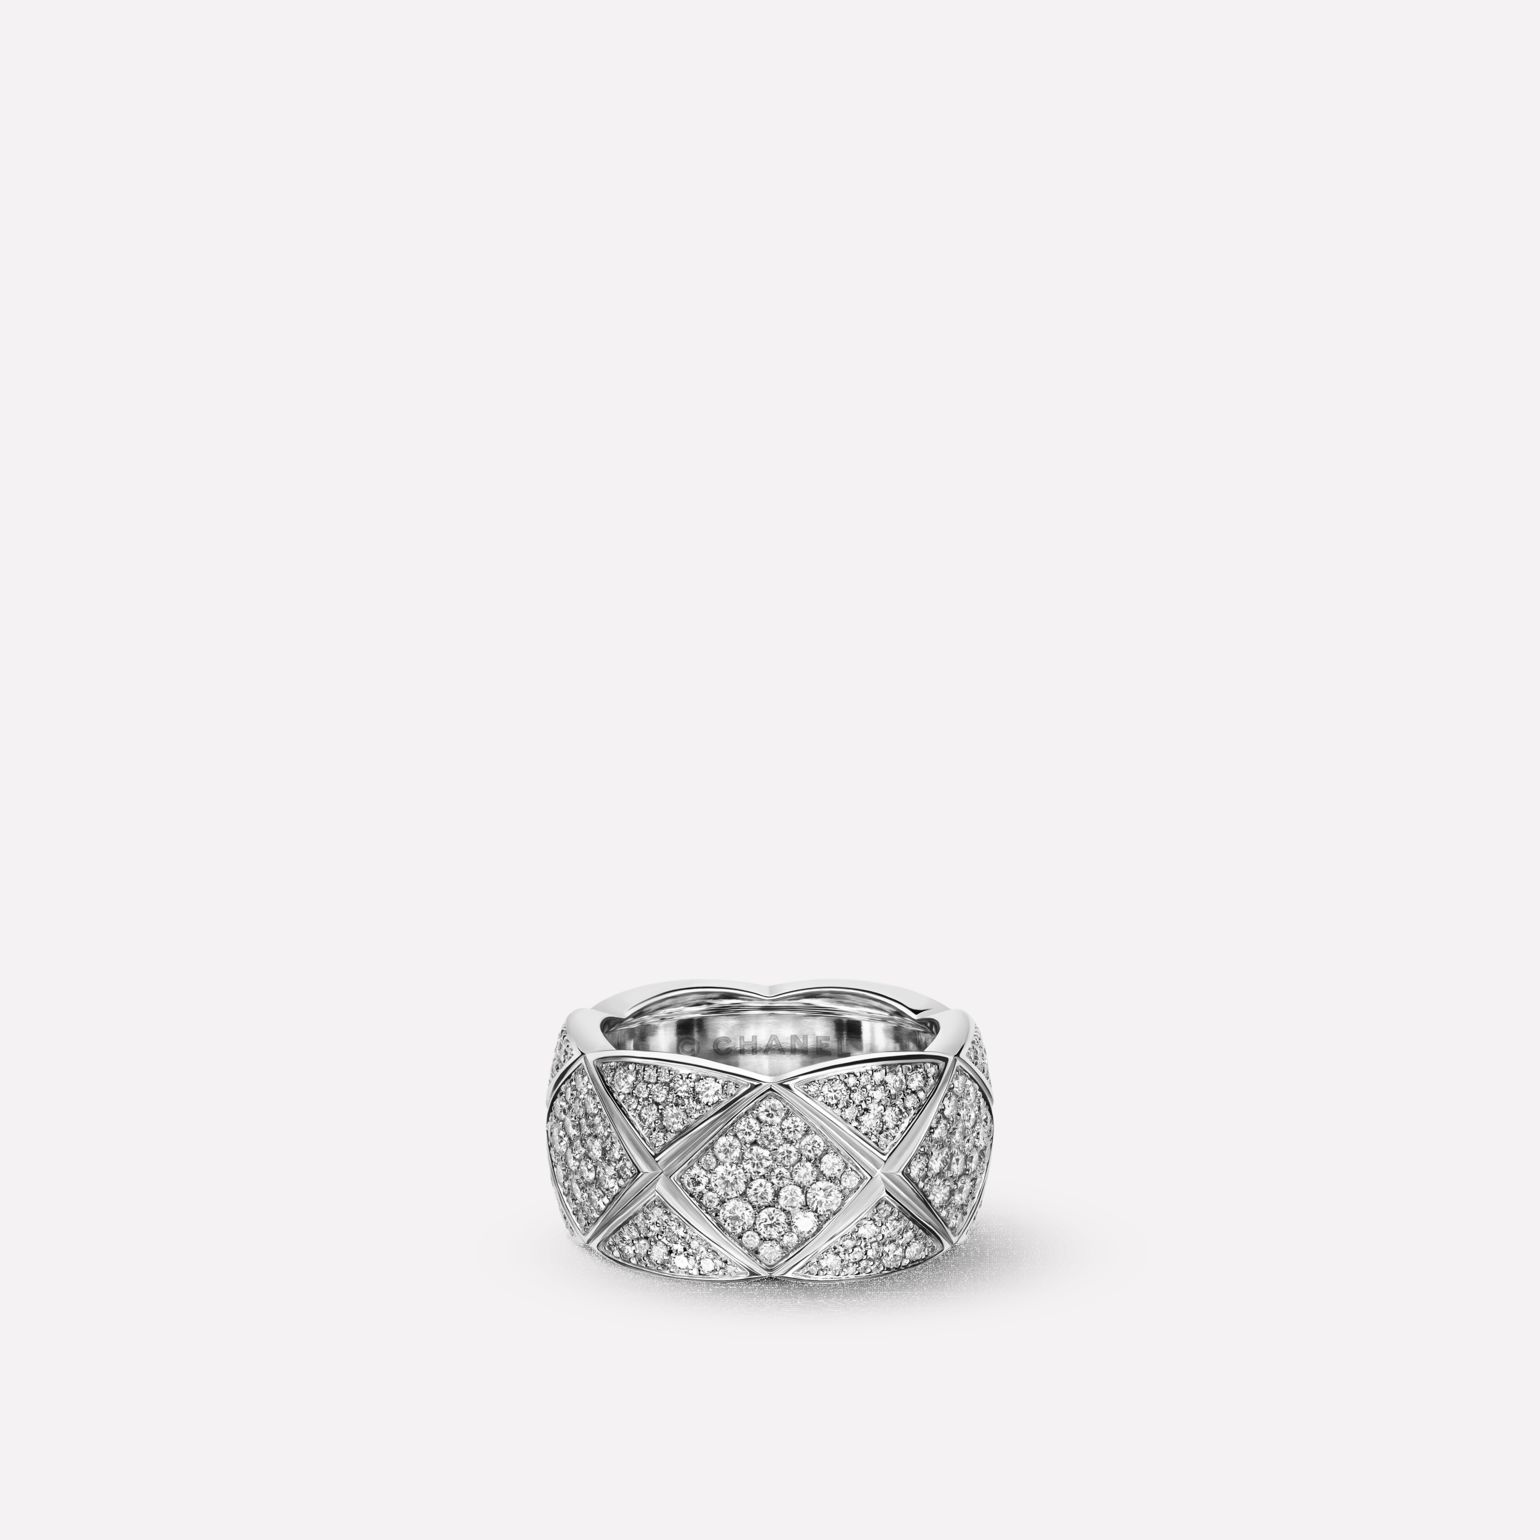 Coco Crush Ring Coco Crush quilted ring in 18K white gold fully paved with diamonds. Medium version.